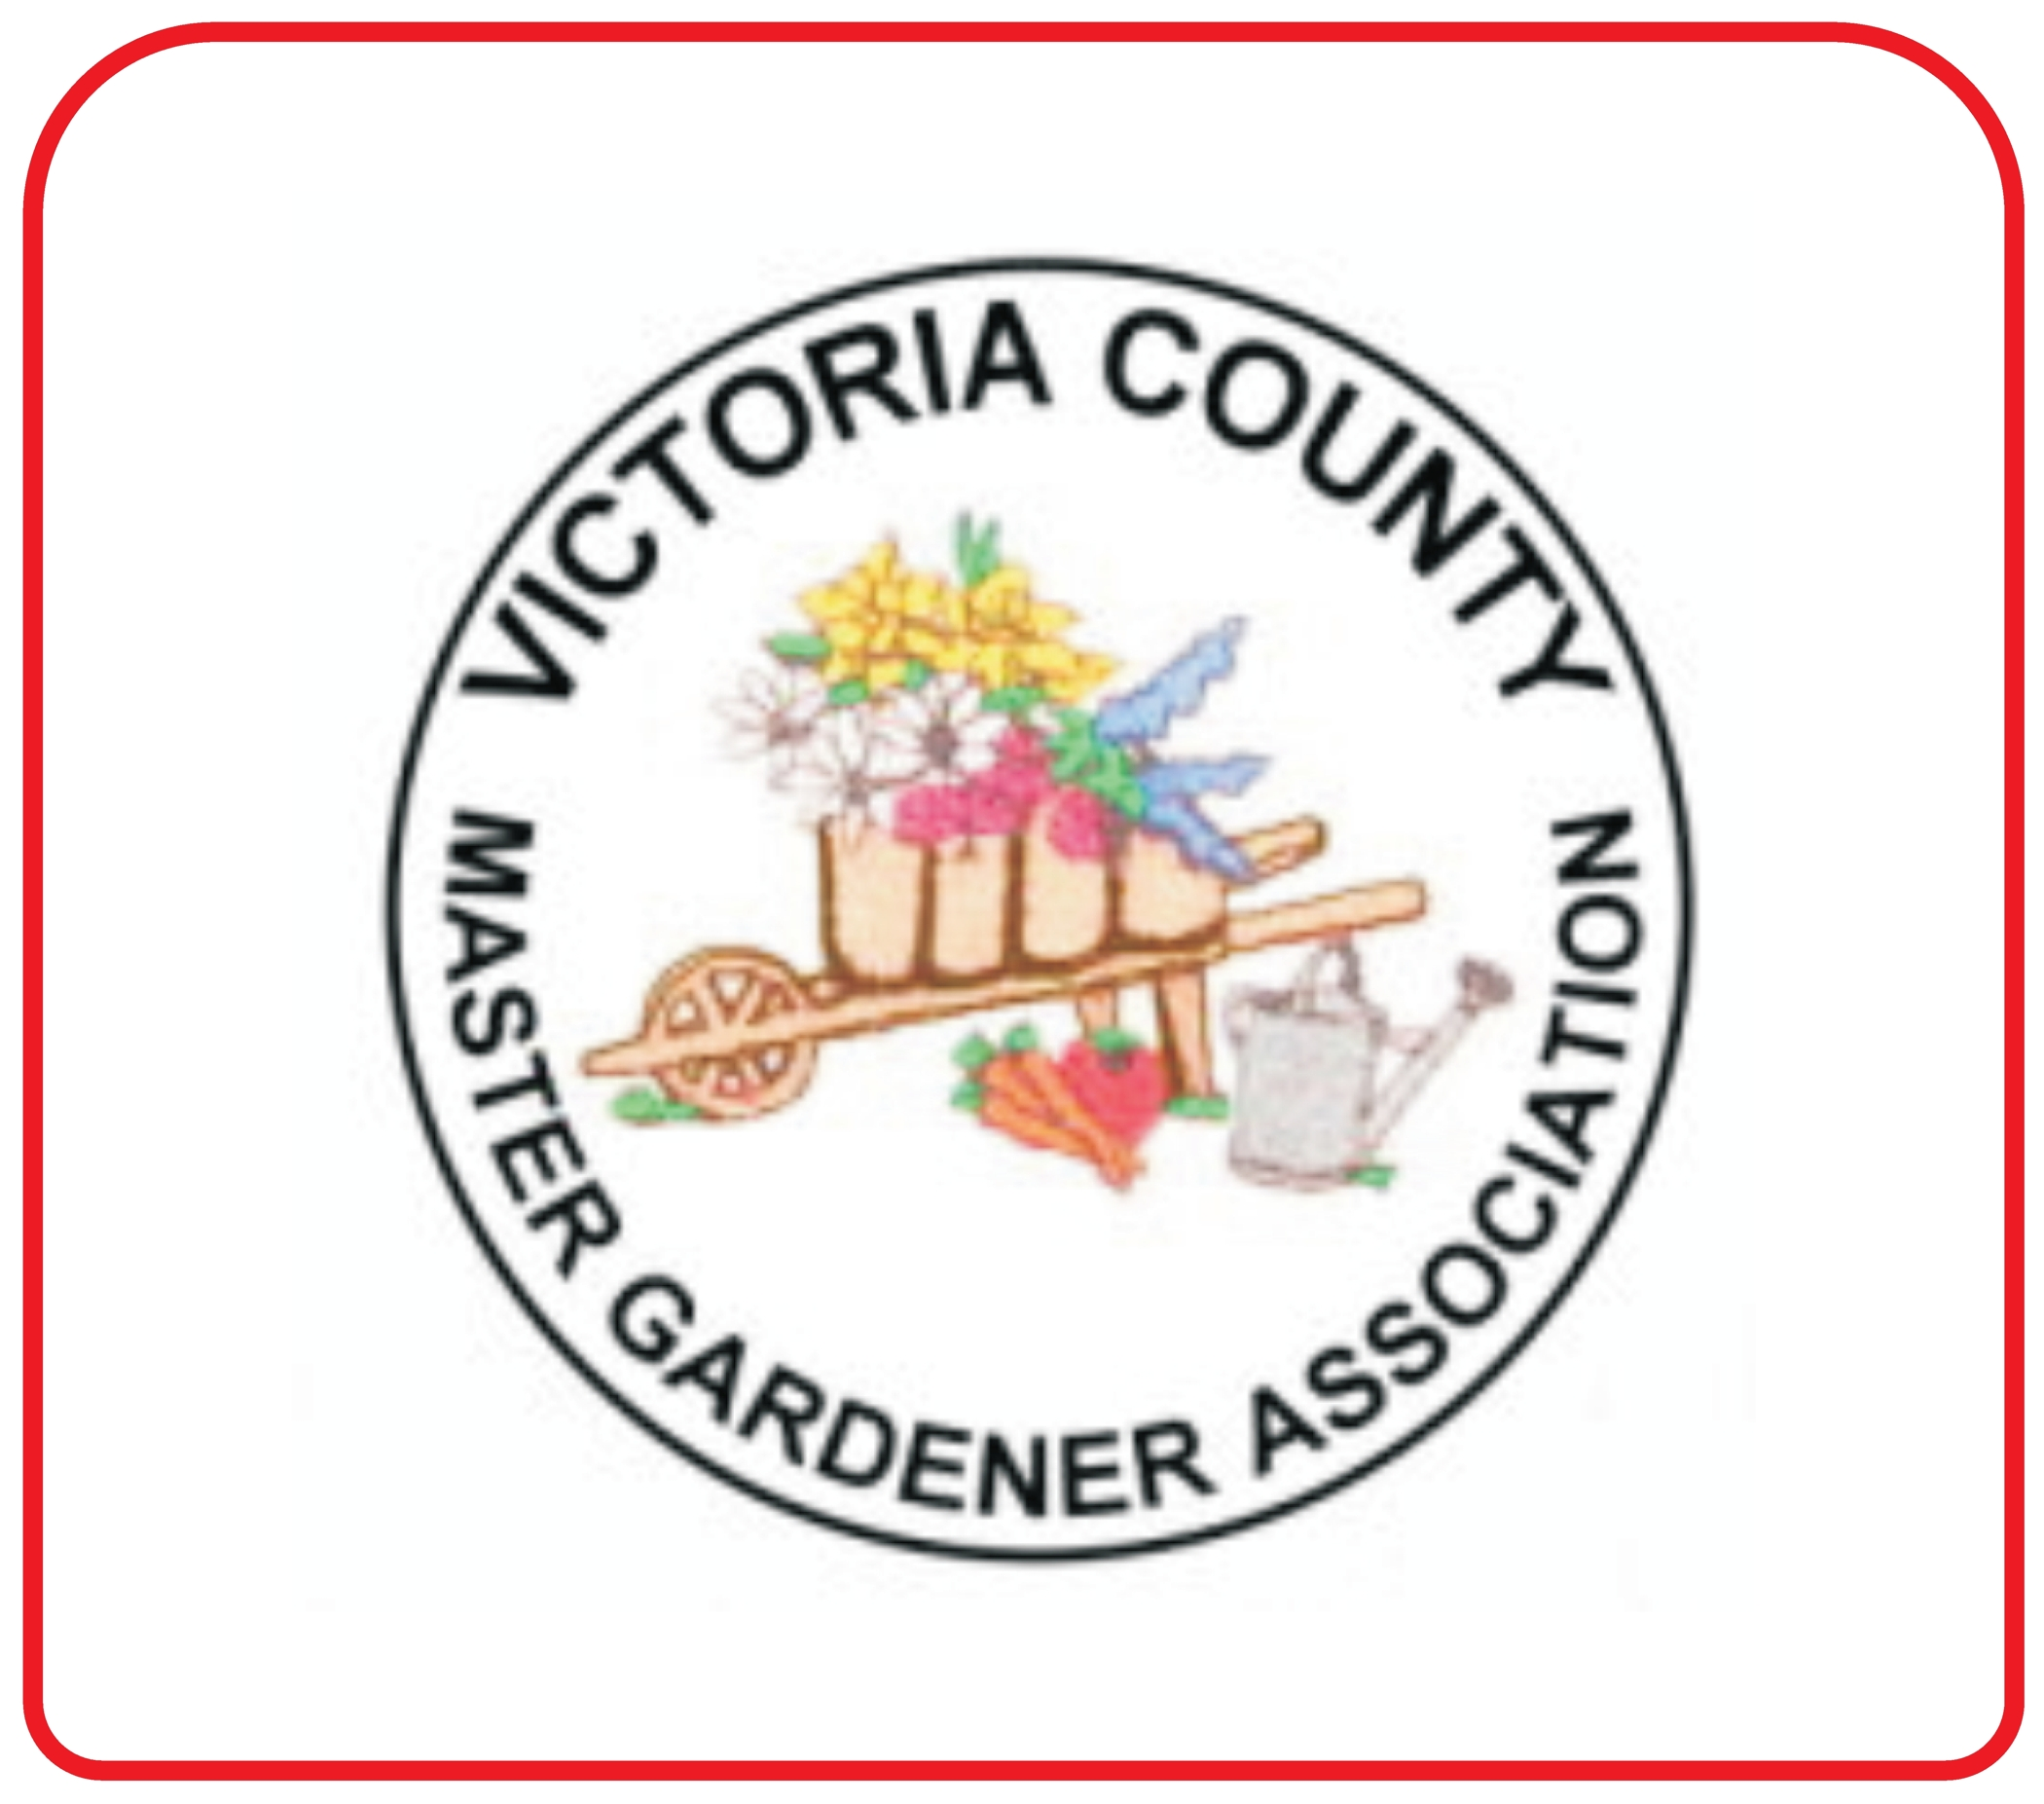 Victoria 20county 20master 20gardeners 20association